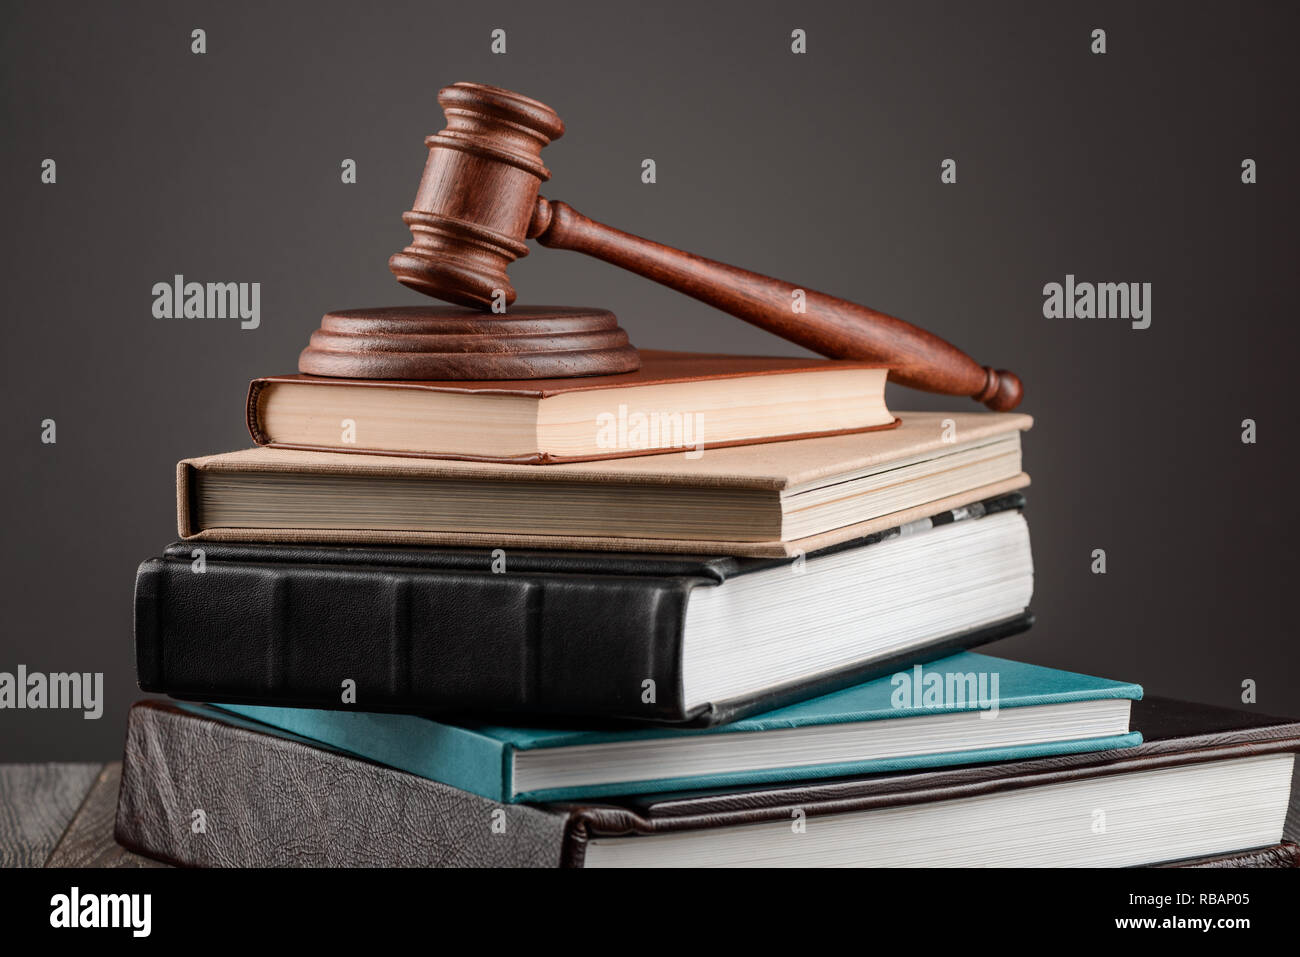 Pile of books and gavel - Stock Image